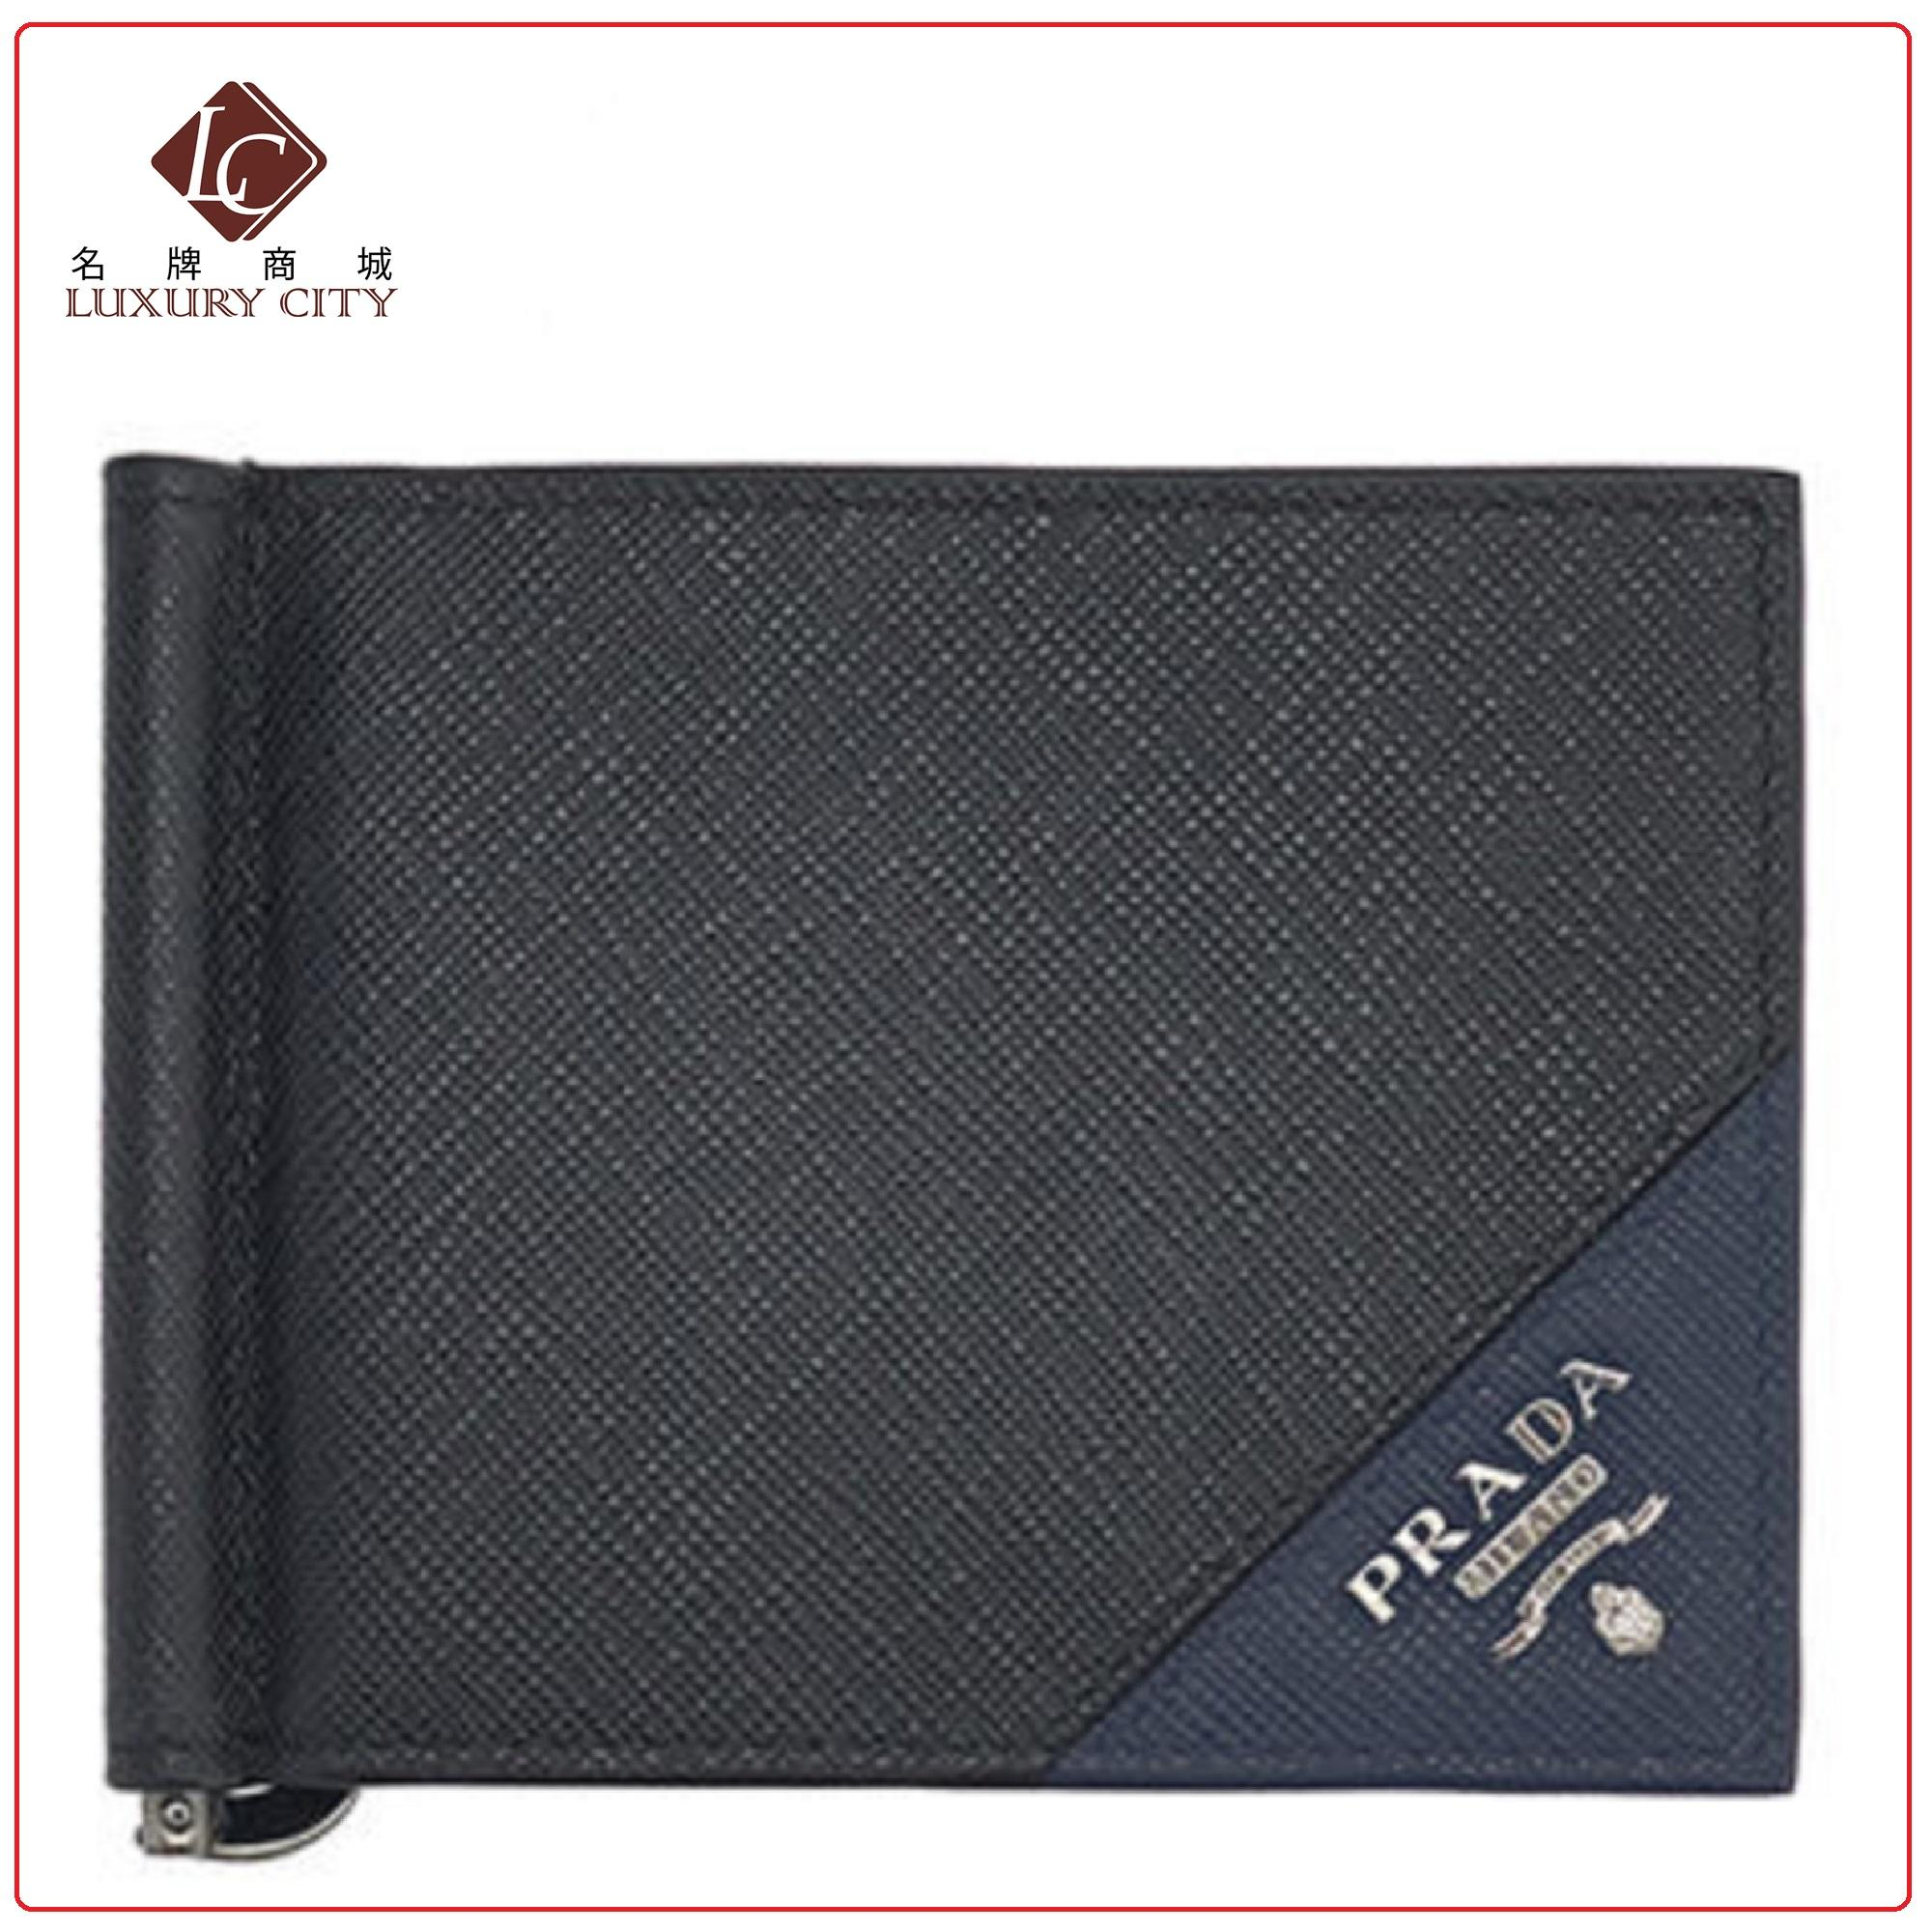 2e0cd946b7cd Latest Marc By Marc Jacobs,Prada Men Fashion Wallets Products ...